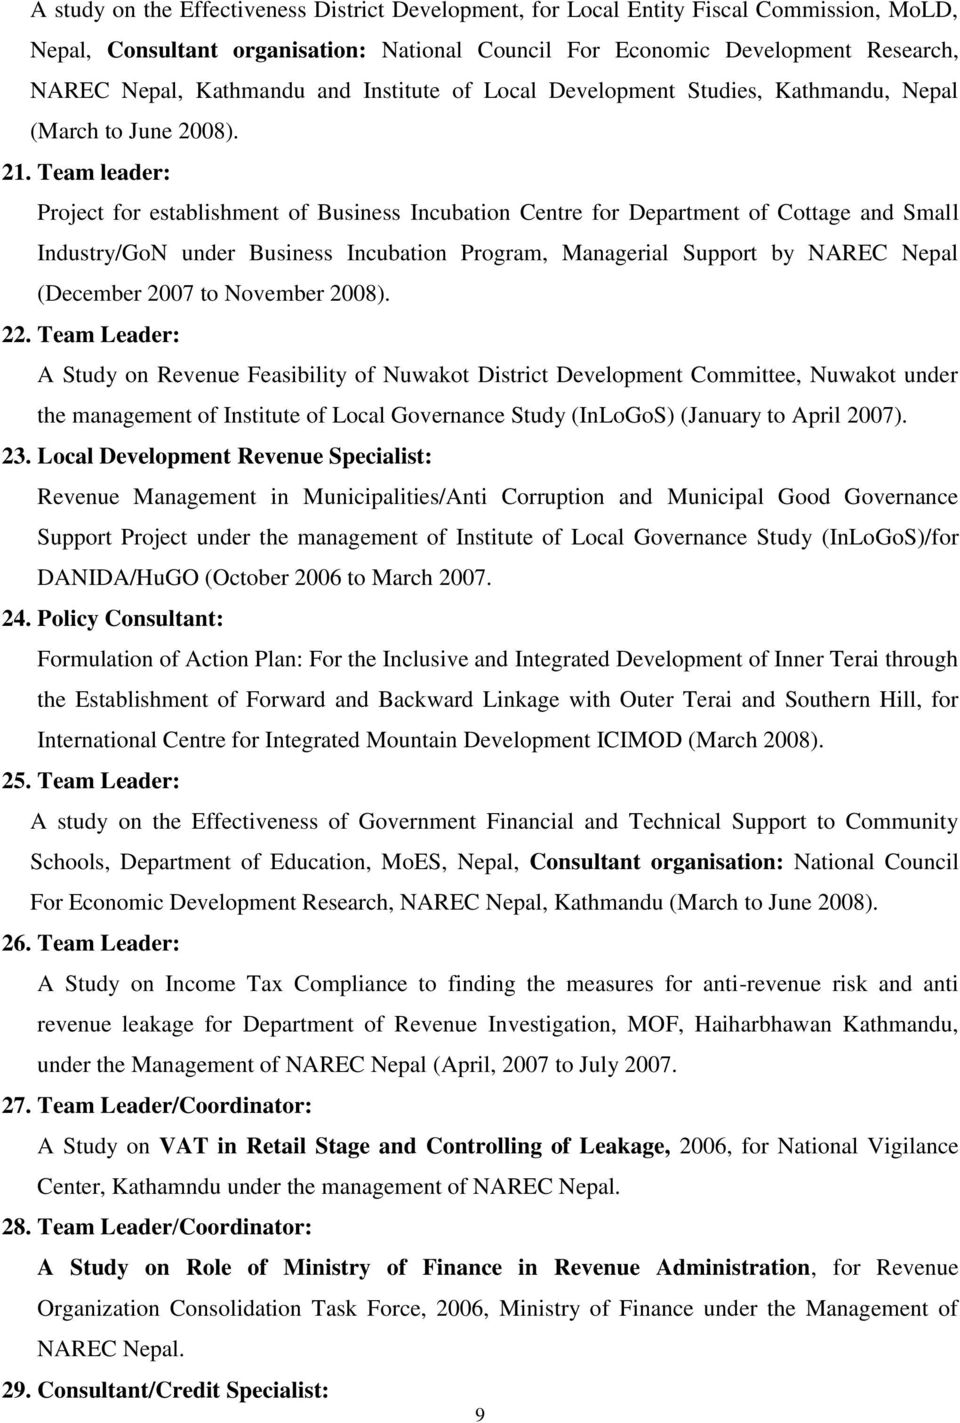 Team leader: Project for establishment of Business Incubation Centre for Department of Cottage and Small Industry/GoN under Business Incubation Program, Managerial Support by NAREC Nepal (December